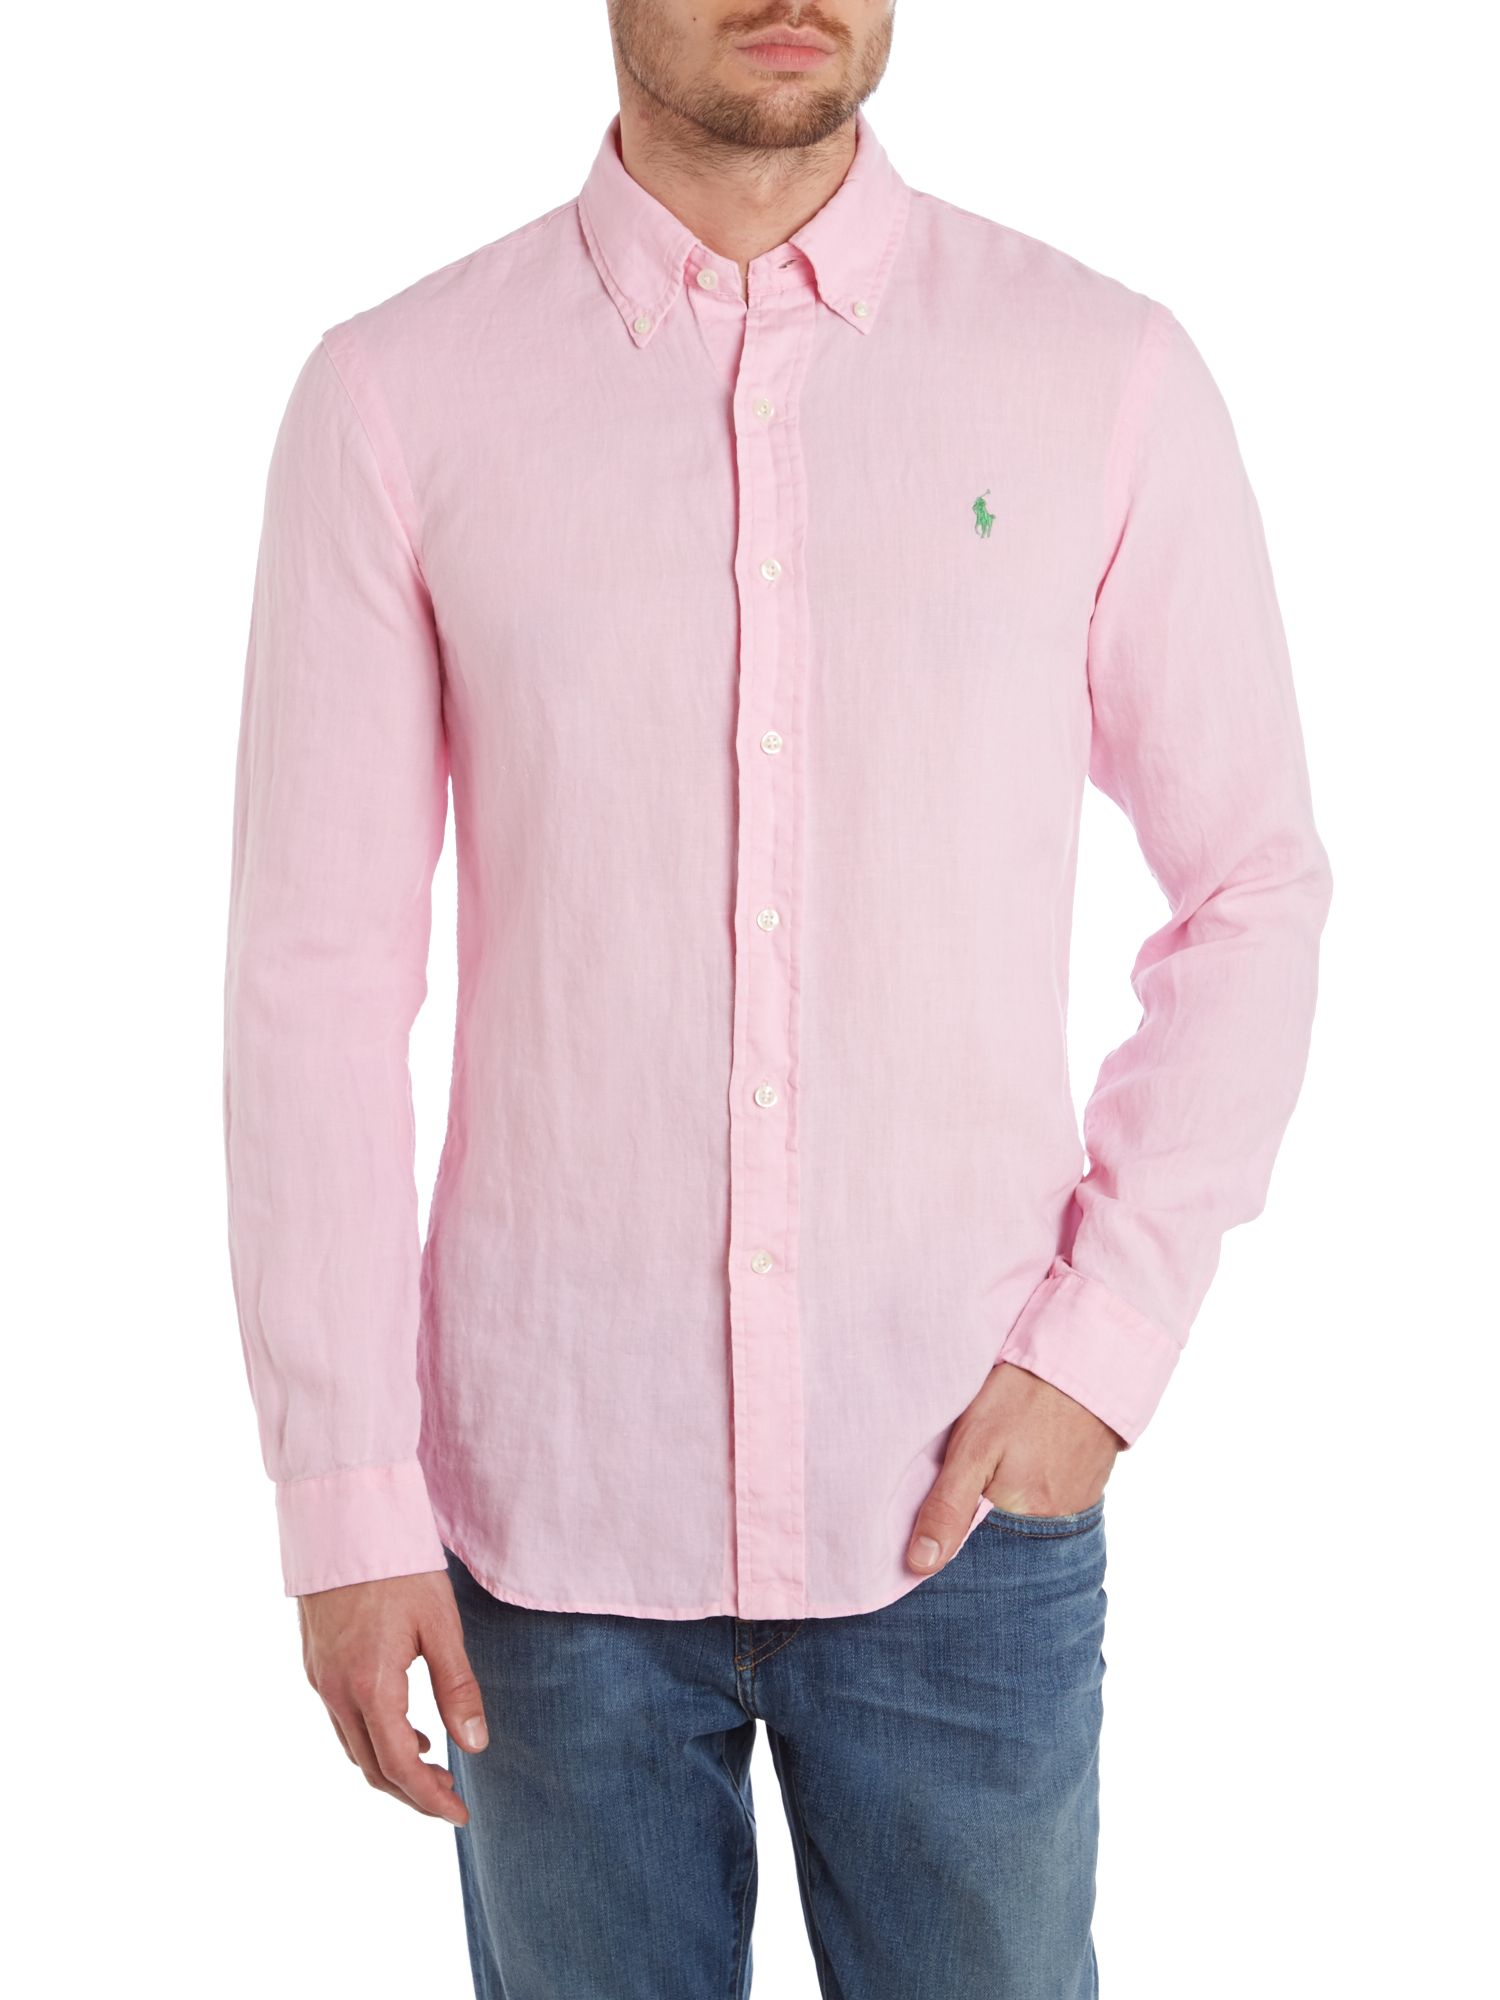 polo ralph lauren ralph lauren slim fit linen shirt in pink for men lyst. Black Bedroom Furniture Sets. Home Design Ideas